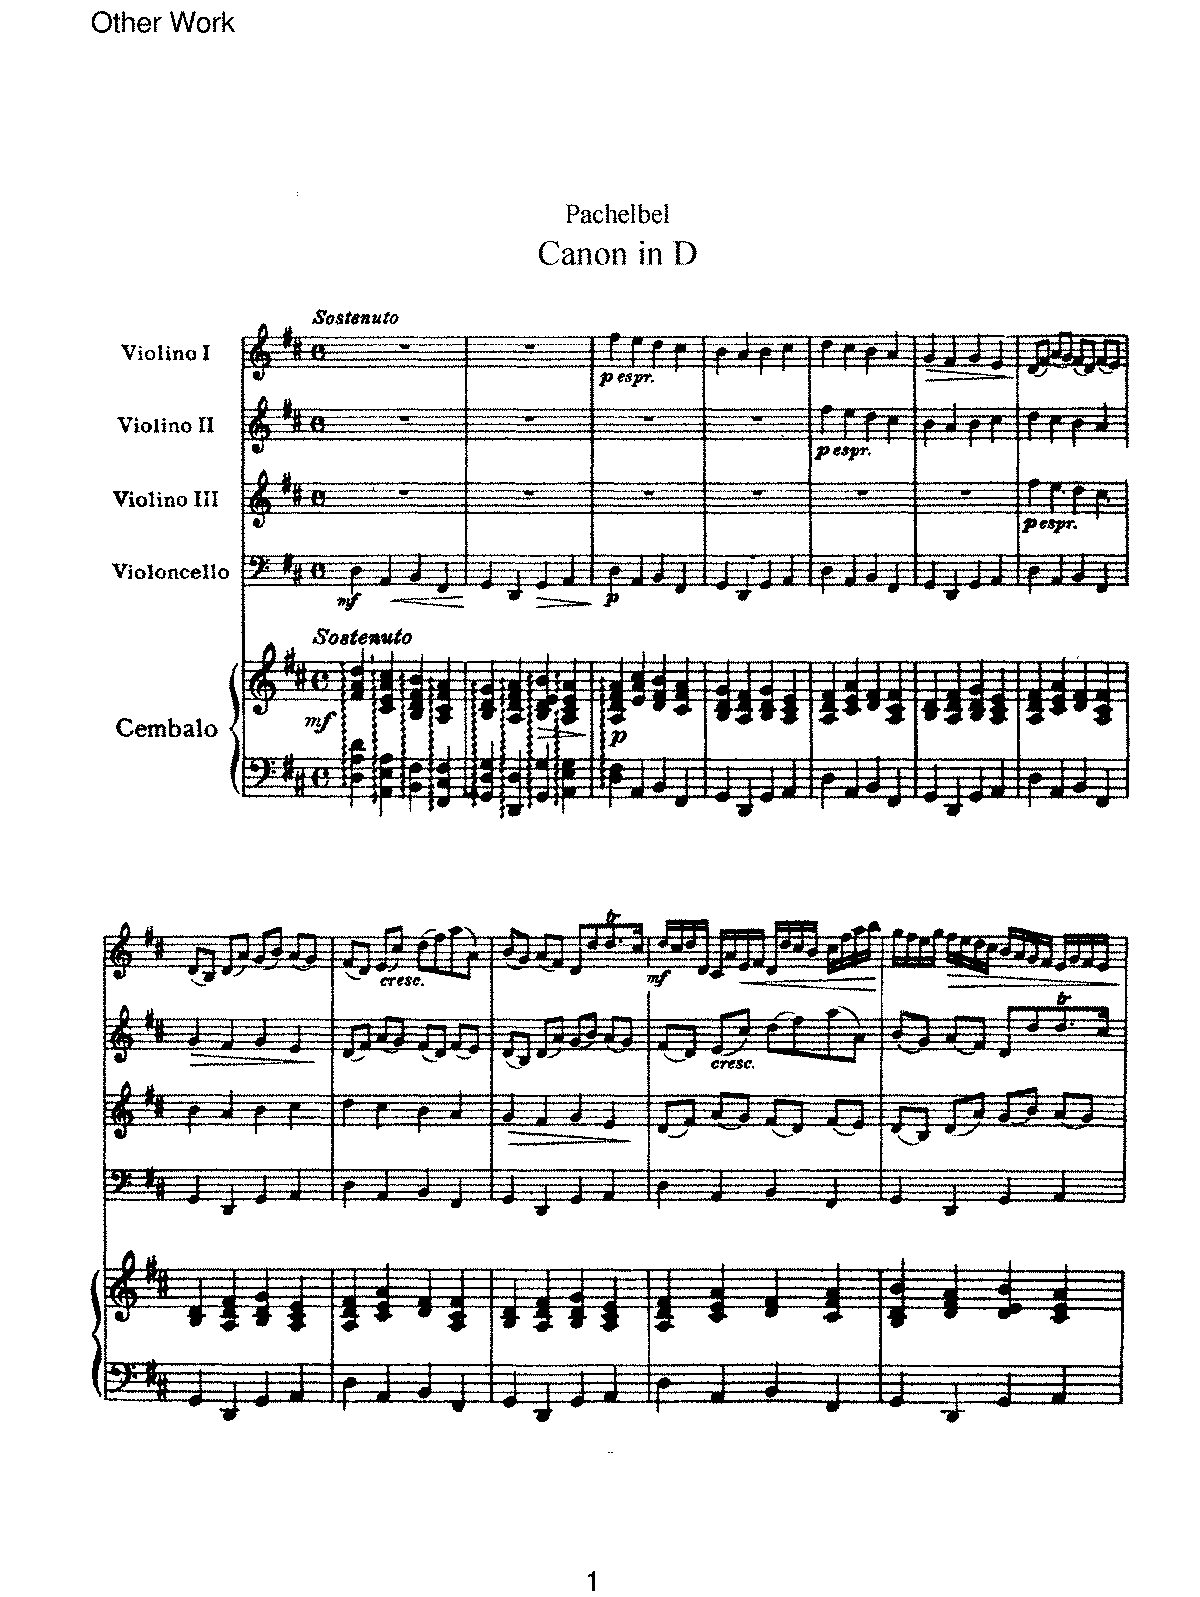 photograph regarding Canon in D Piano Sheet Music Free Printable named Canon and Gigue within just D main, P.37 (Pachelbel, Johann) - IMSLP